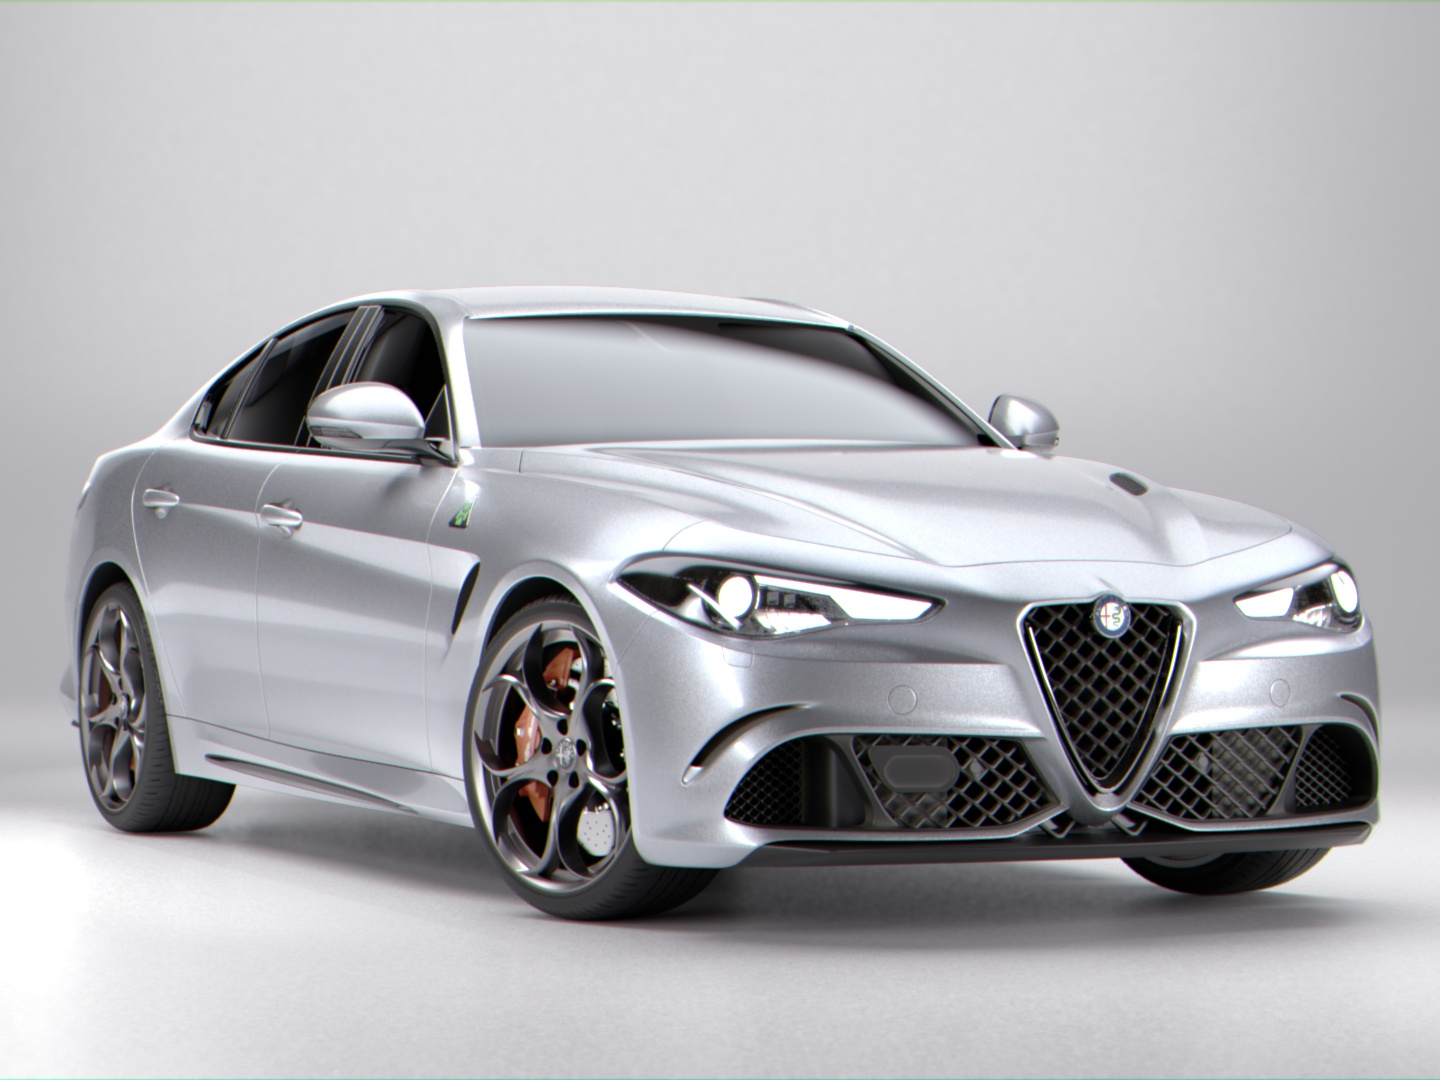 Alfa Romeo Giulia Quadriglio 2016 model milan italian italian cars tire design design art car shading automotive car lighitng car giulia alfa romeo alfa texturing grading nukex compositing lighting 3dmodelling